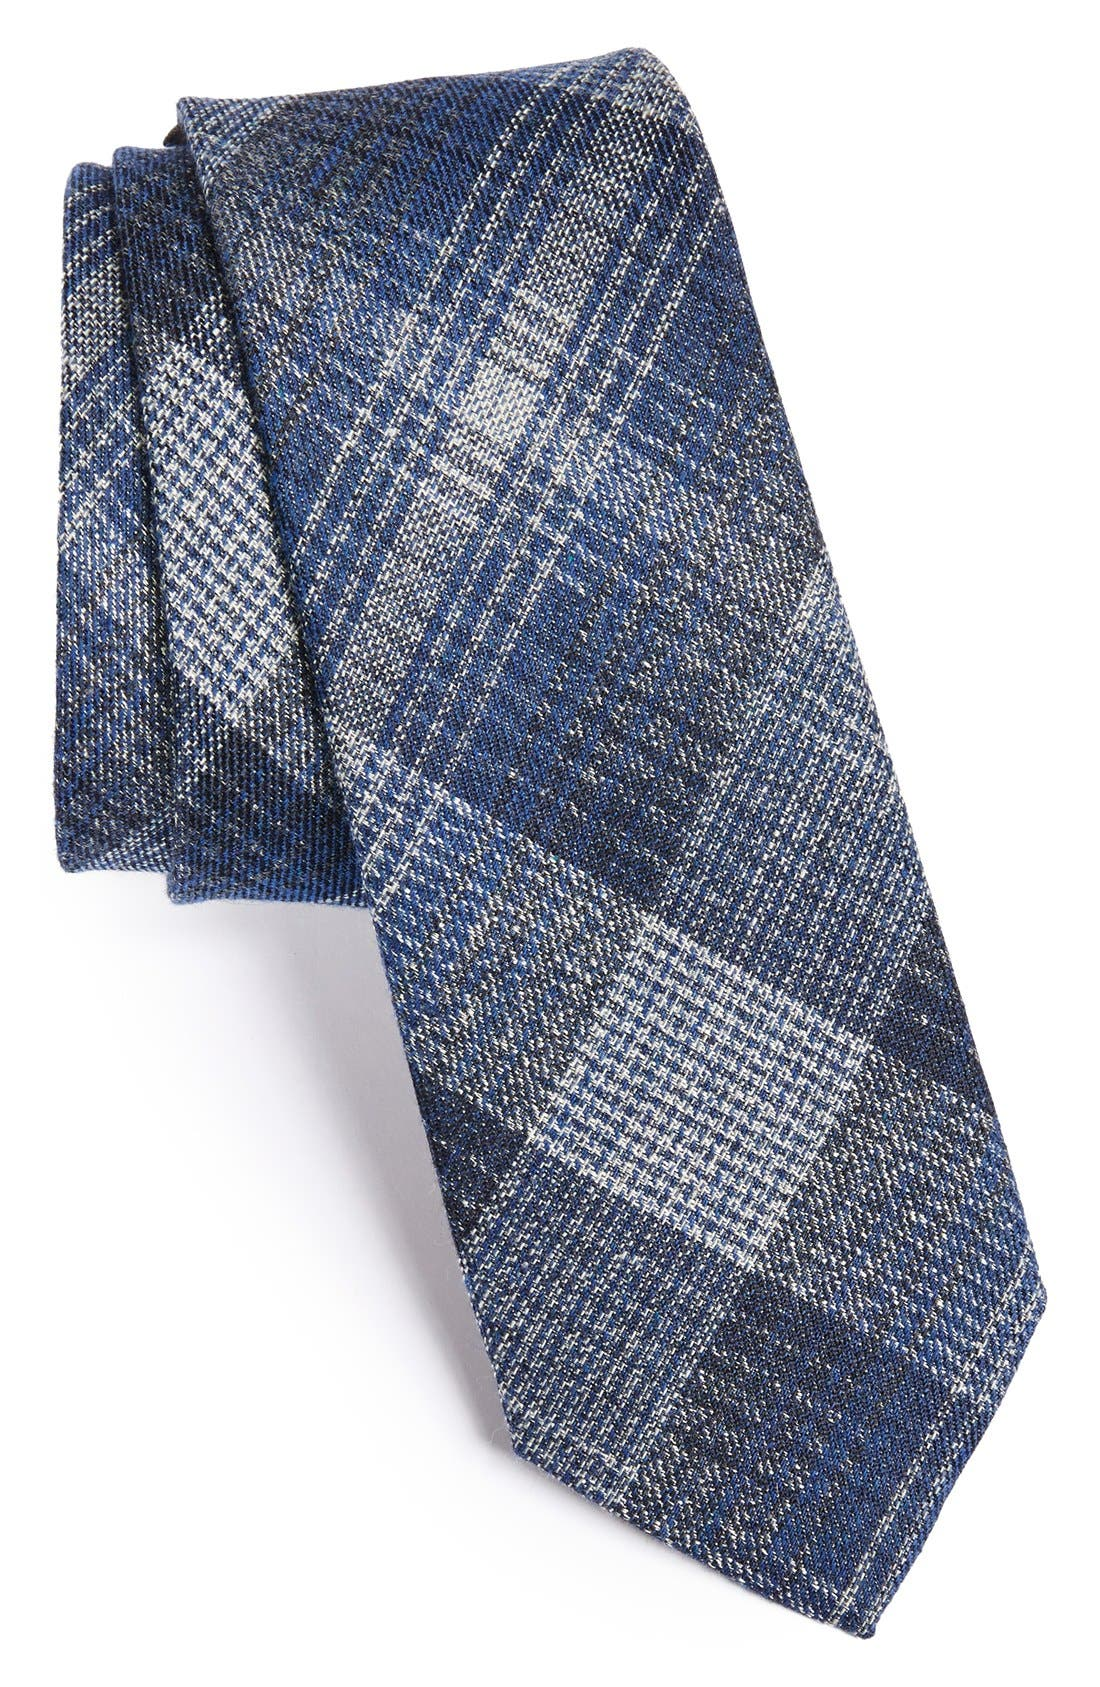 Main Image - John Varvatos Collection Woven Silk & Cotton Tie